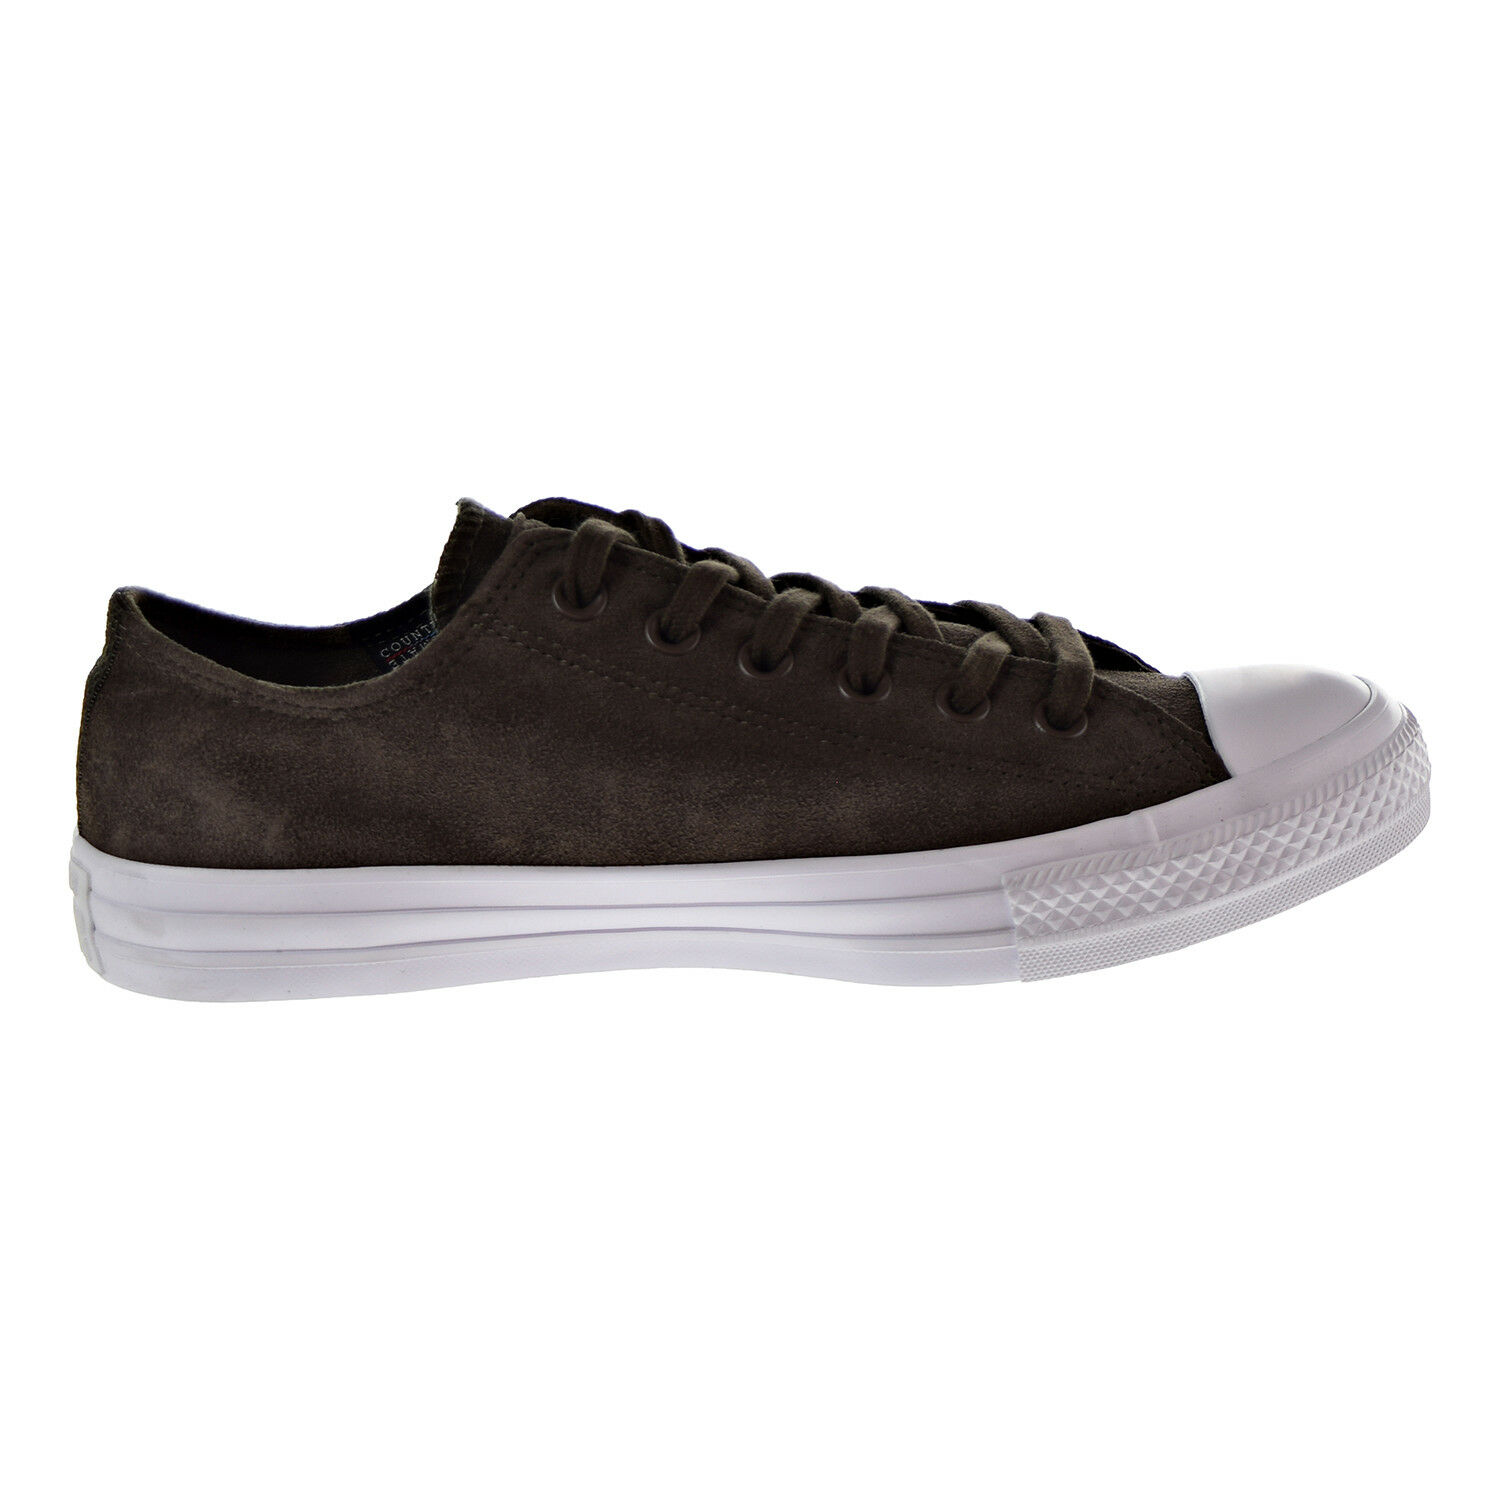 Converse CT All Star Ox Counter Climate Unisex shoes Dark Chocolate 157598c